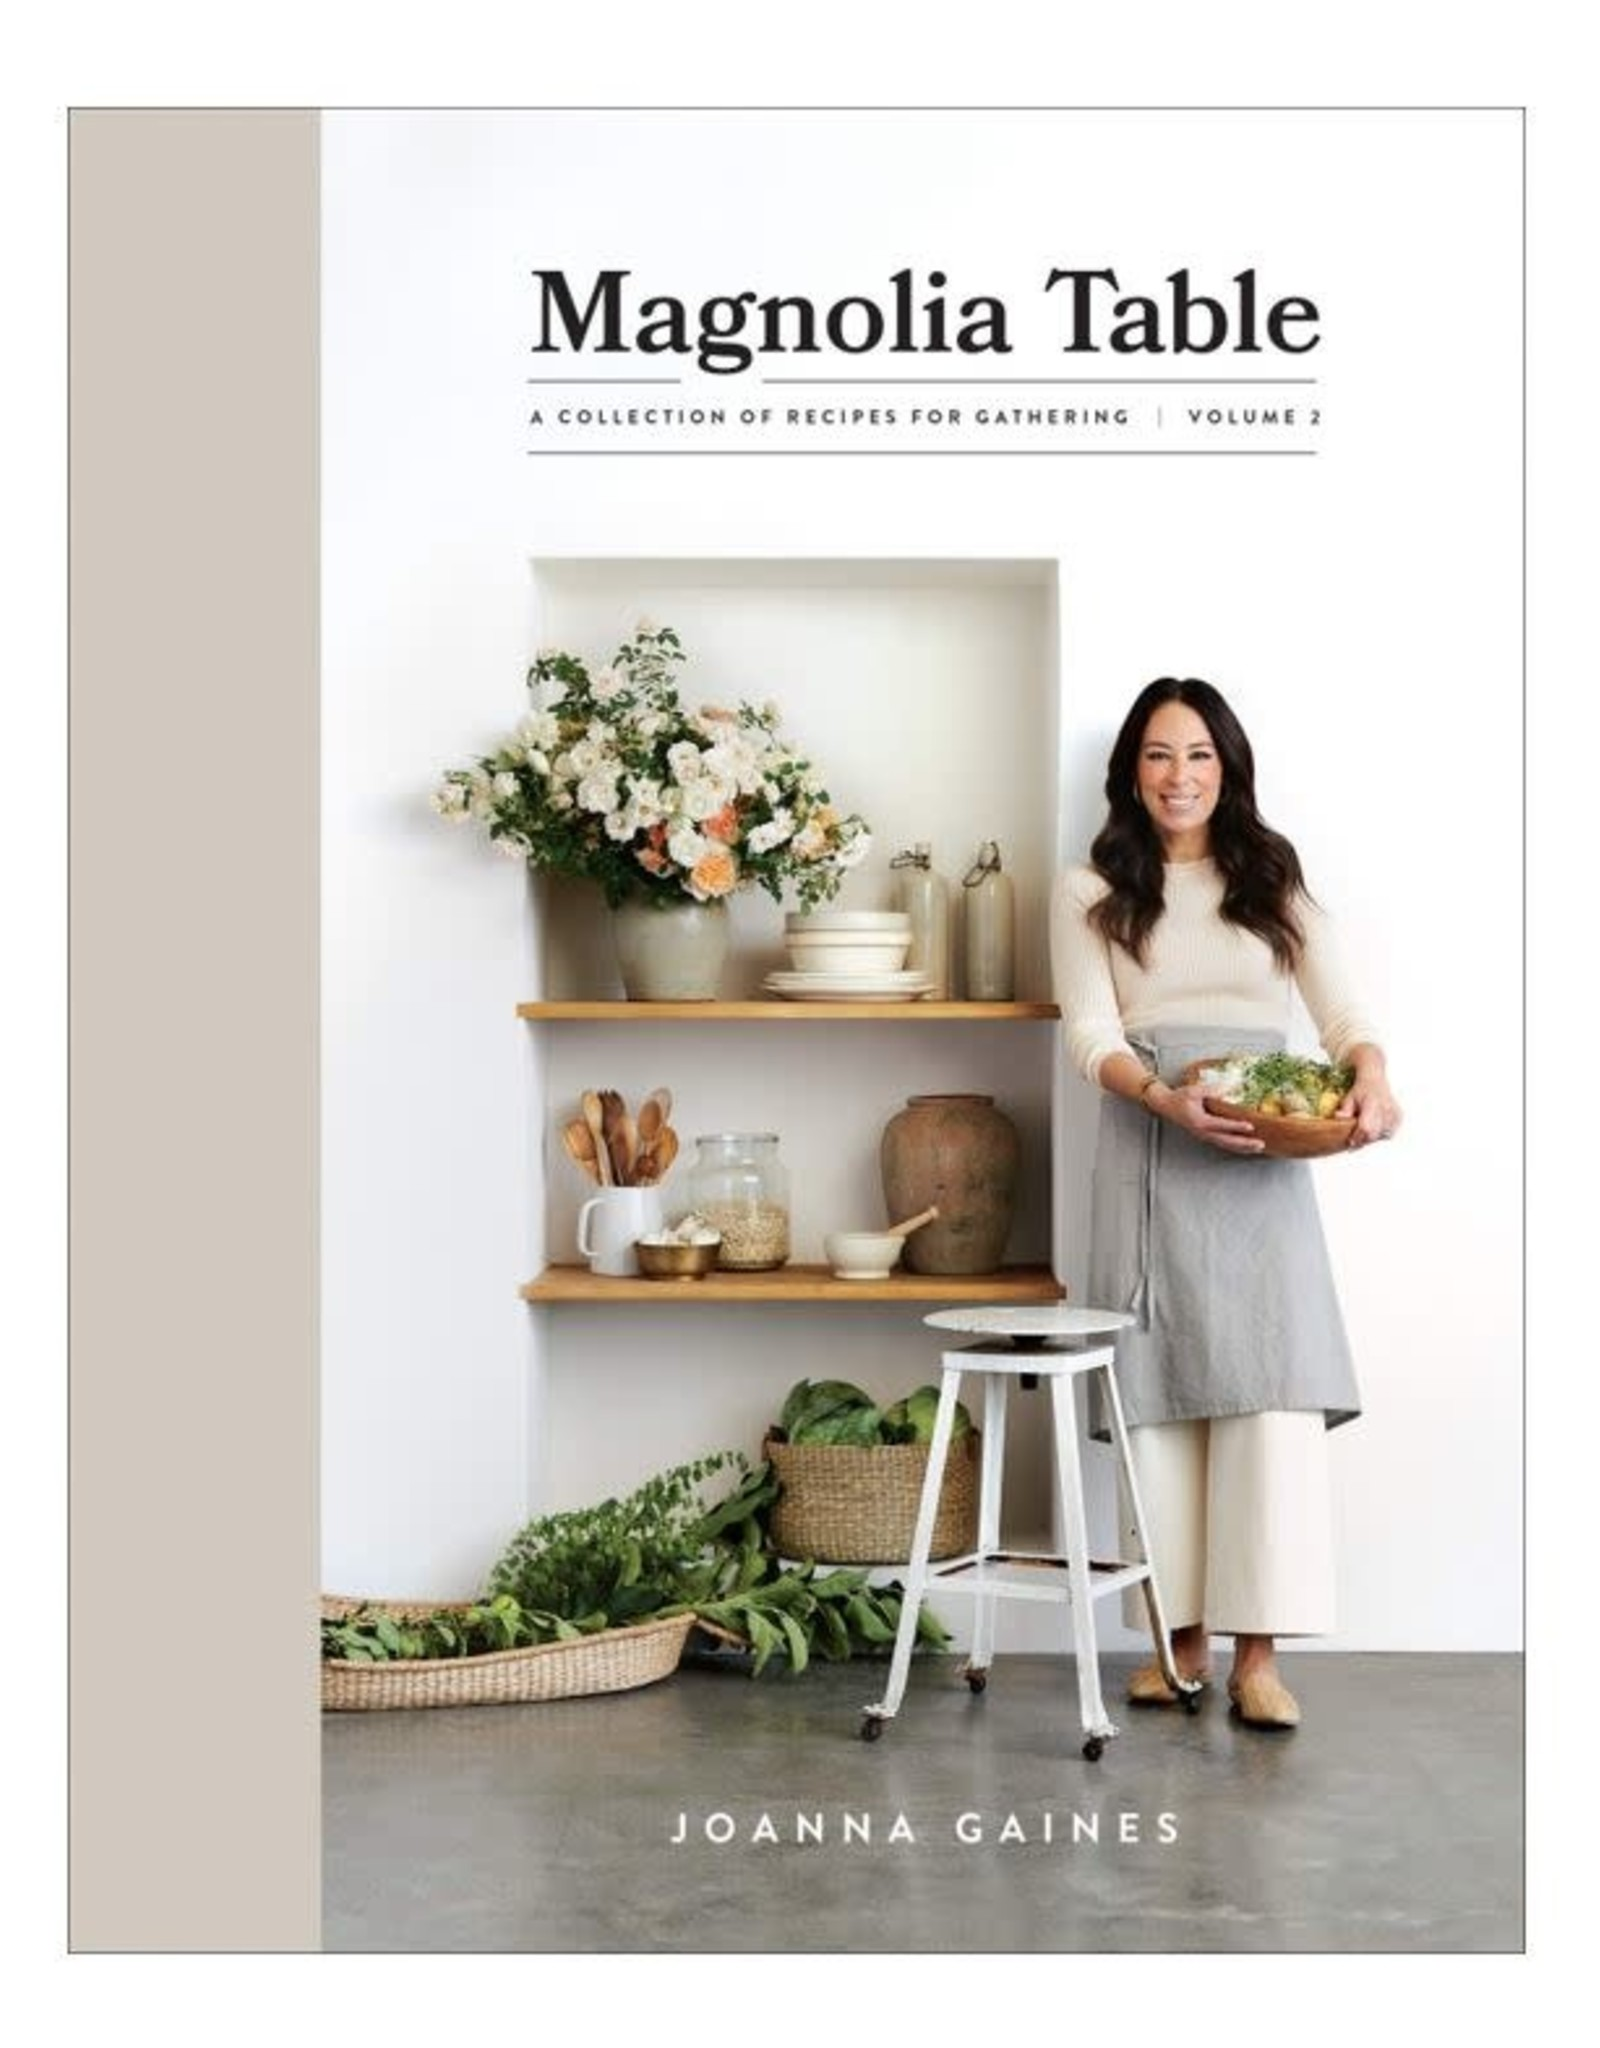 Magnolia Table - Joanna Gaines - Volume 2